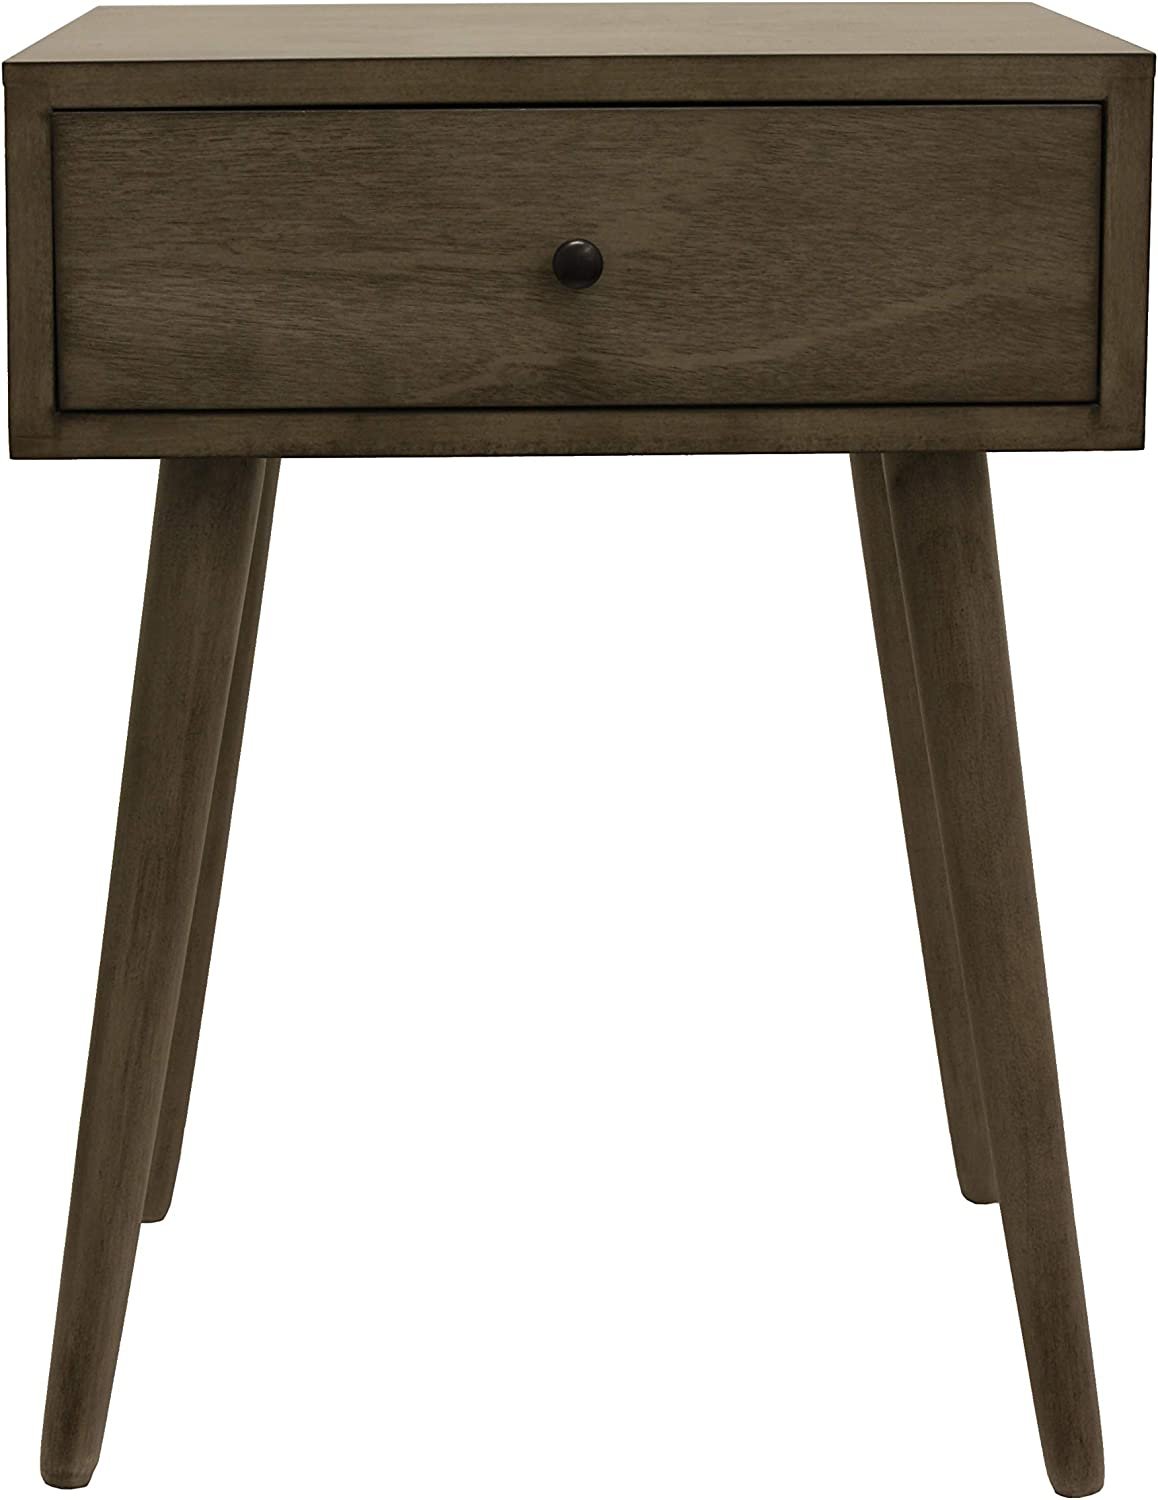 Decor Therapy Side Table, Resotration Gray